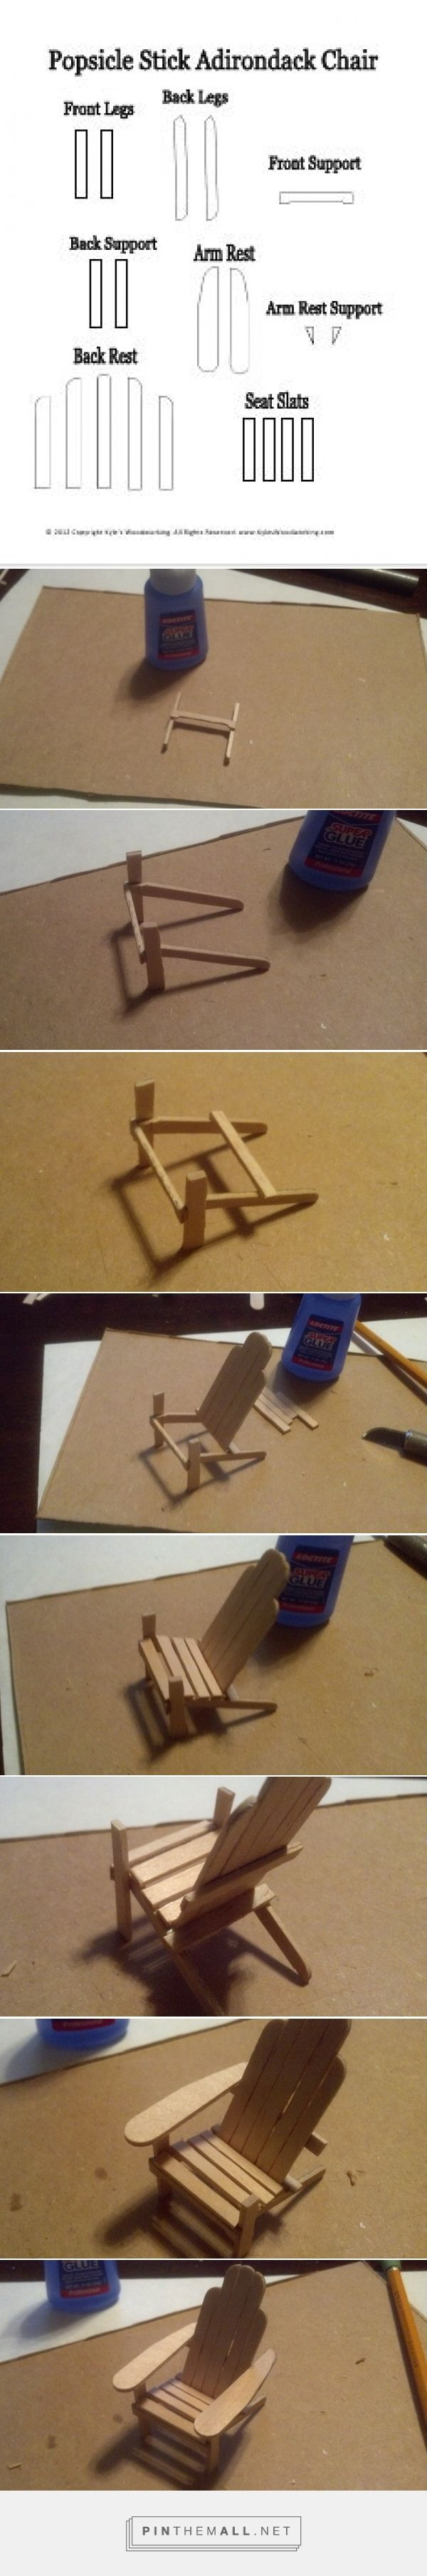 Adirondack chair back slats - How To Make A Popsicle Stick Mini Adirondack Chair A Grouped Images